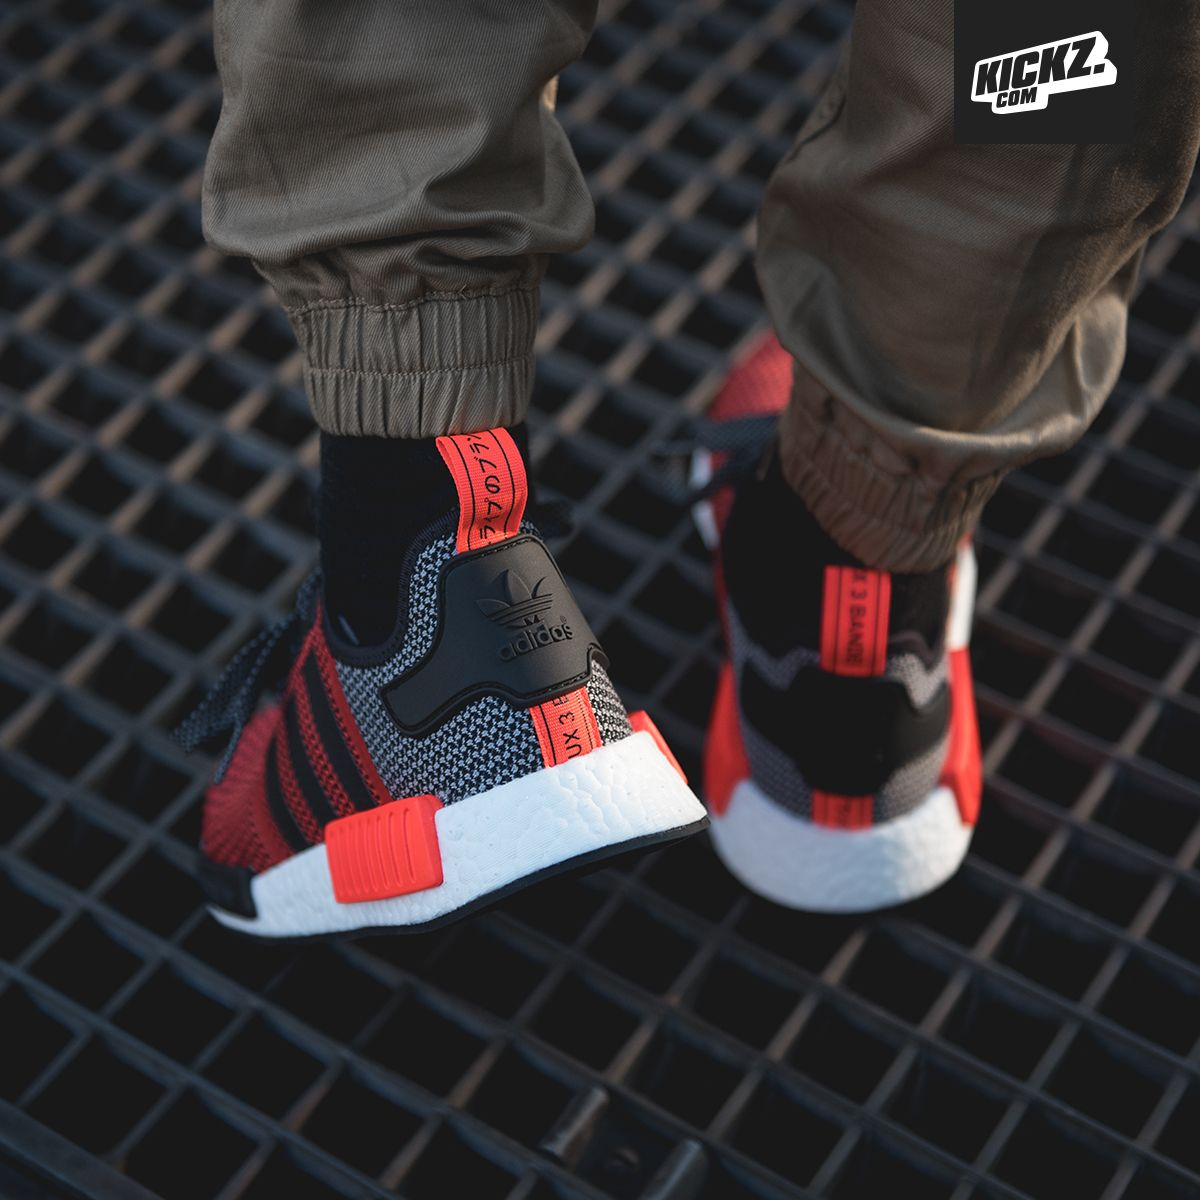 0e32f54c7 Style meets comfort  The adidas NMD R1 lush red core black with Primeknit